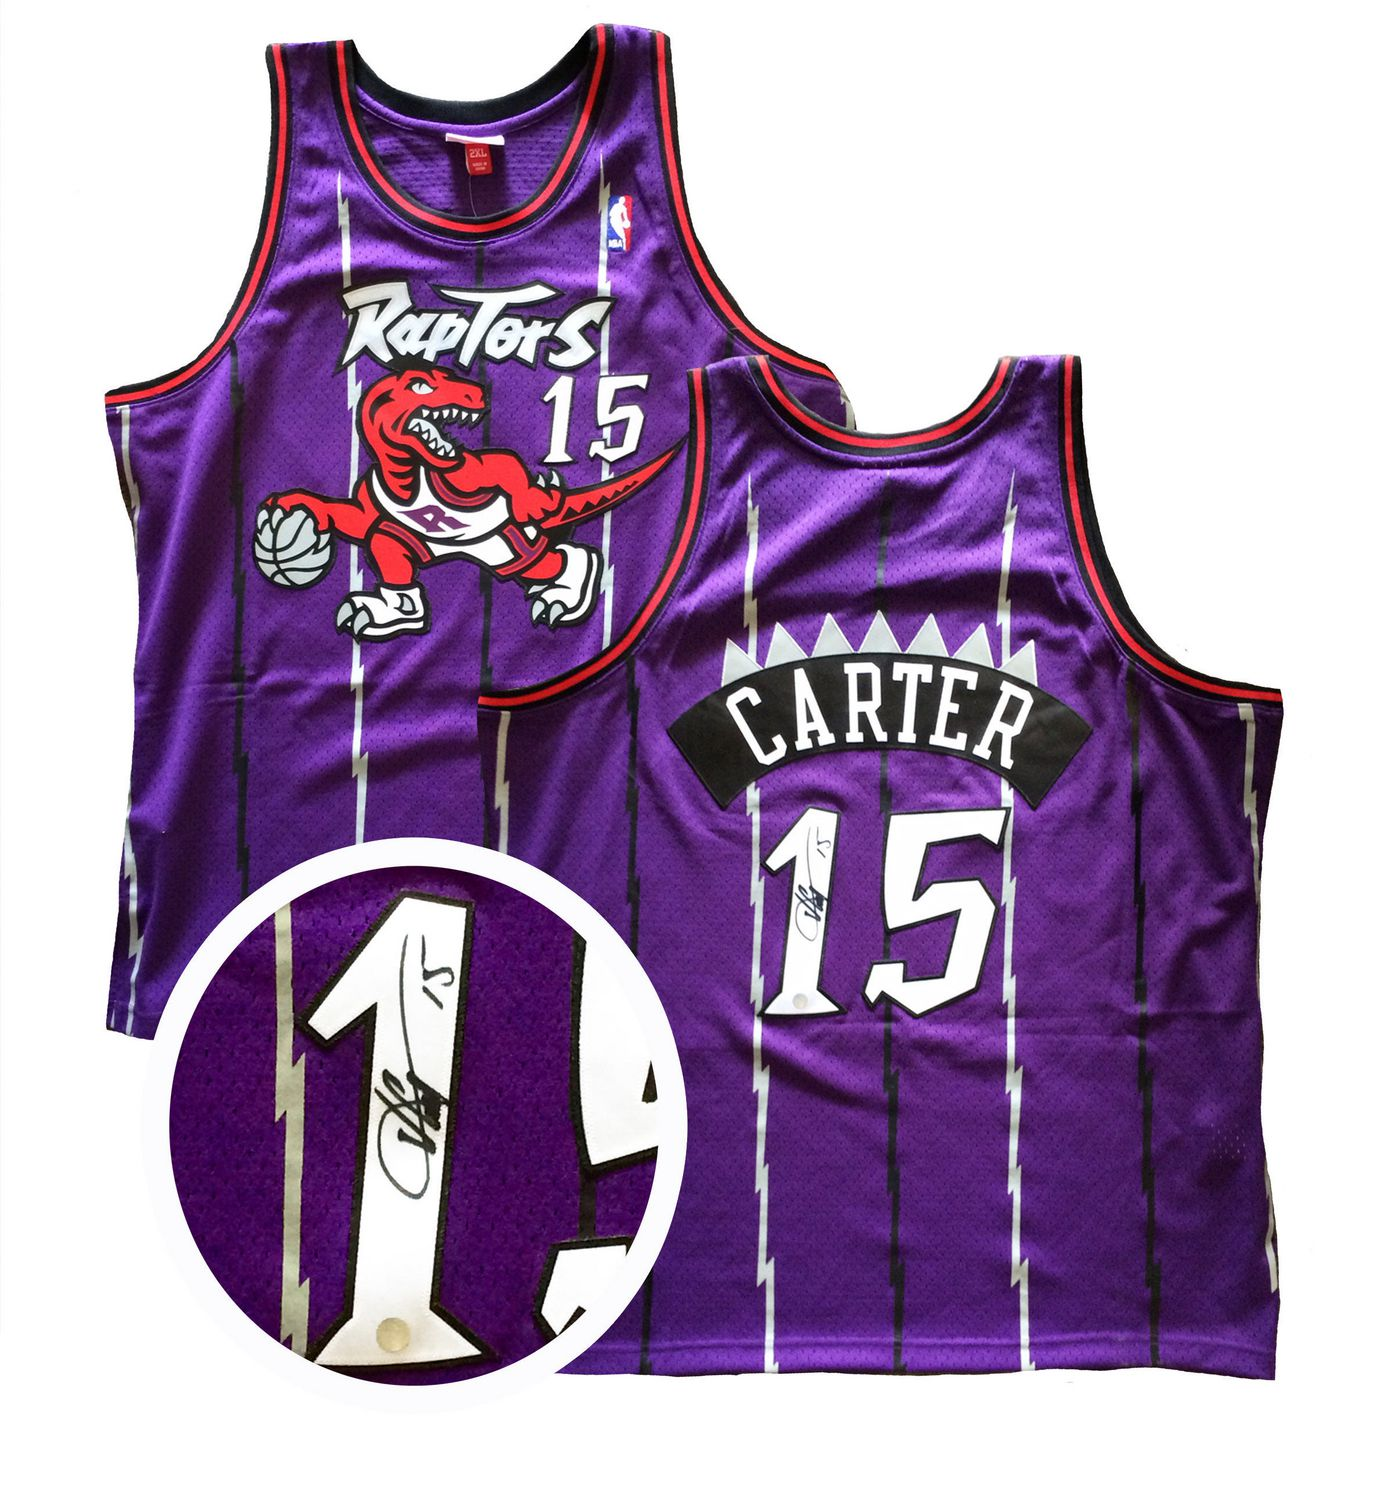 huge discount f28a7 c9e35 Vince Carter Signed Jersey Raptors Replica Purple 1995-1998 ...